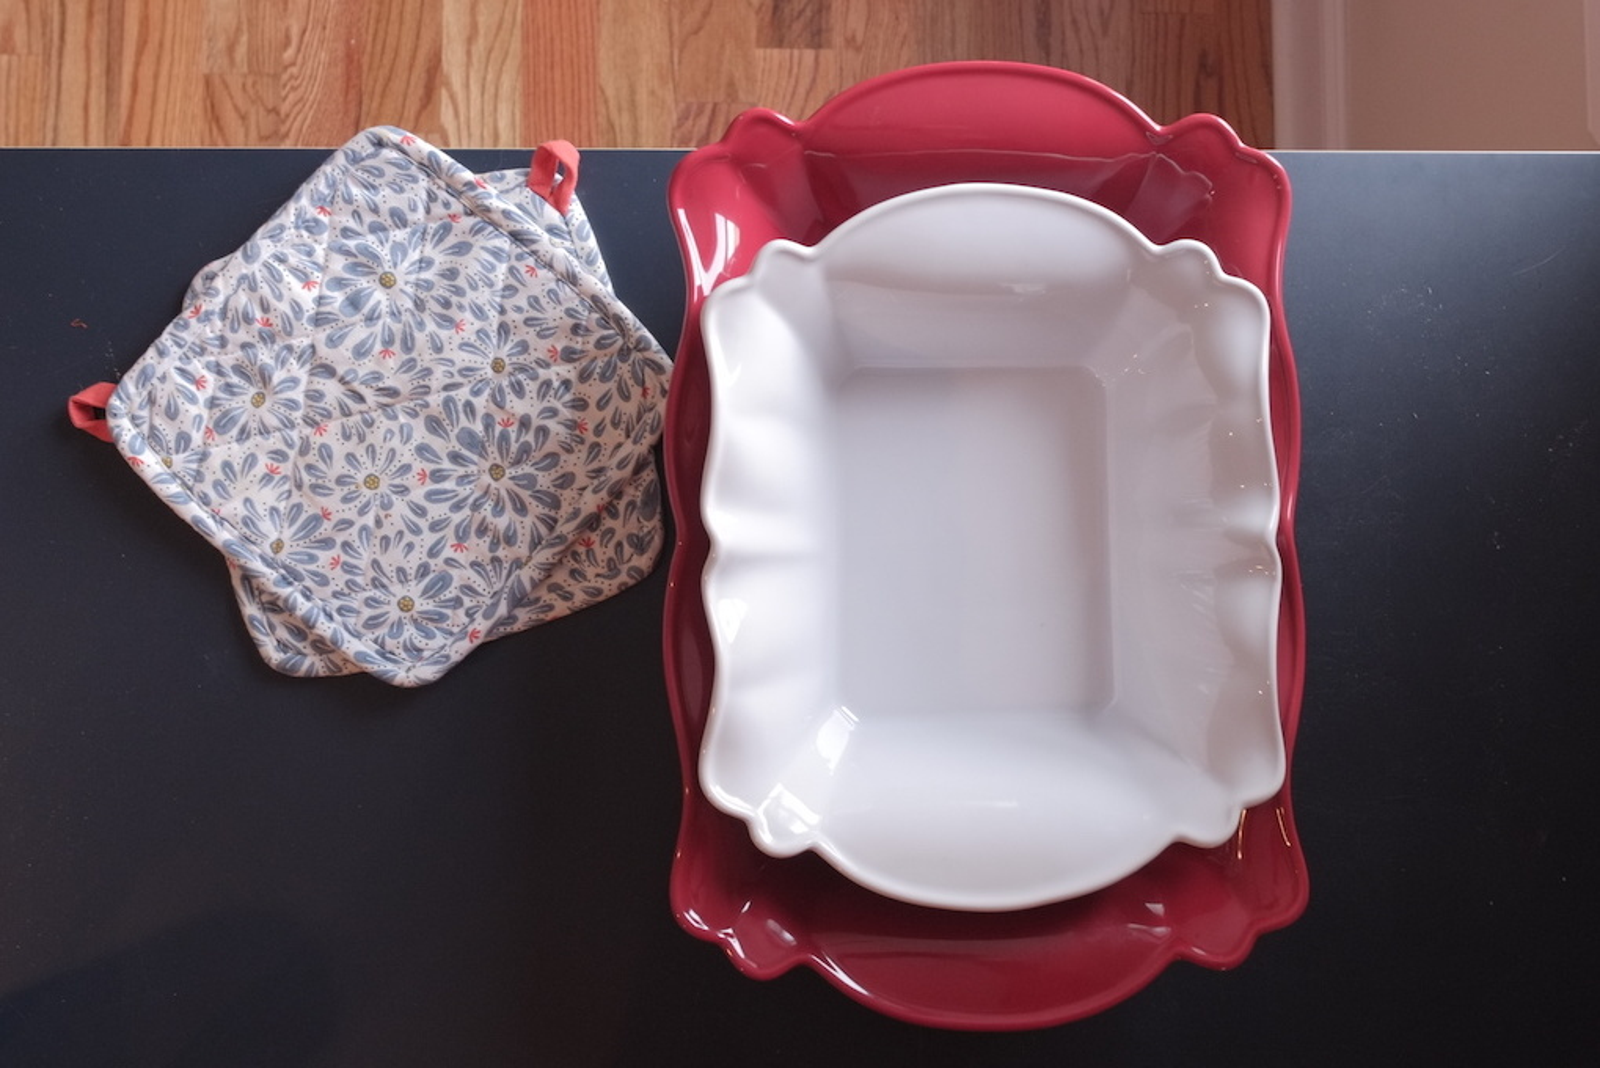 Crofton ceramic bakeware, $12.99 for the set